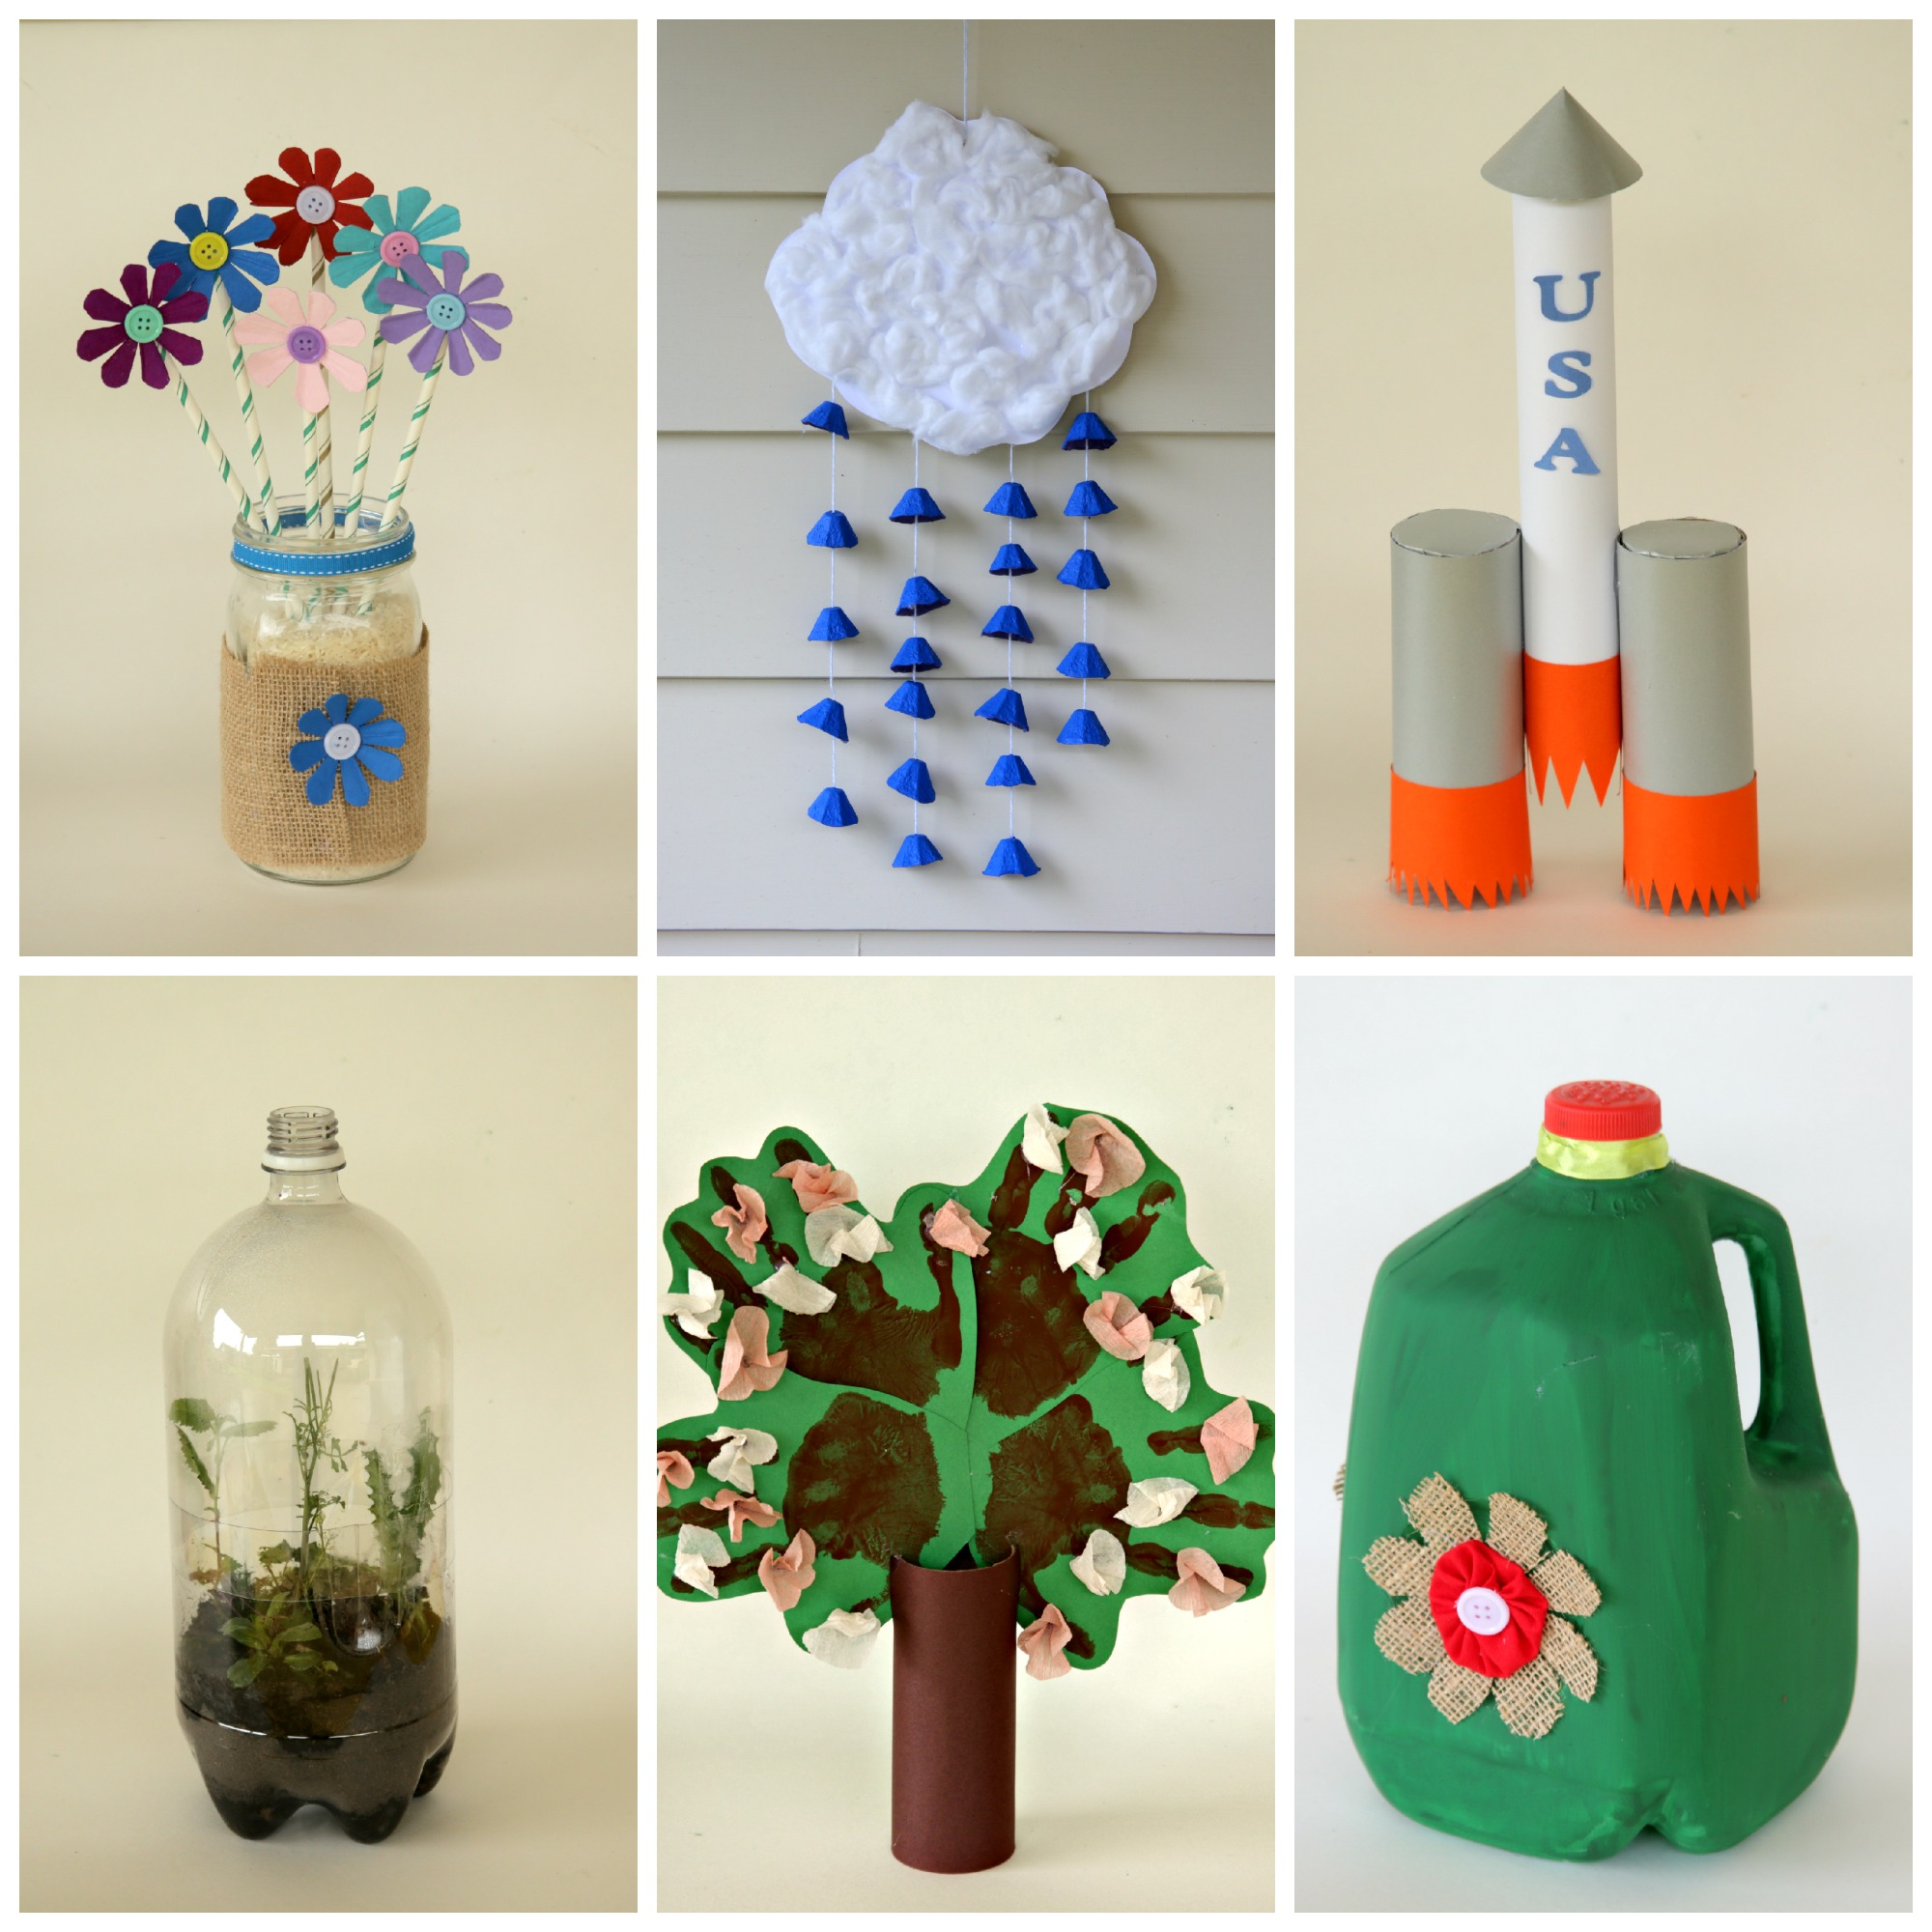 6 earth day crafts from recycled materials kix cereal for Recycling ideas for kids